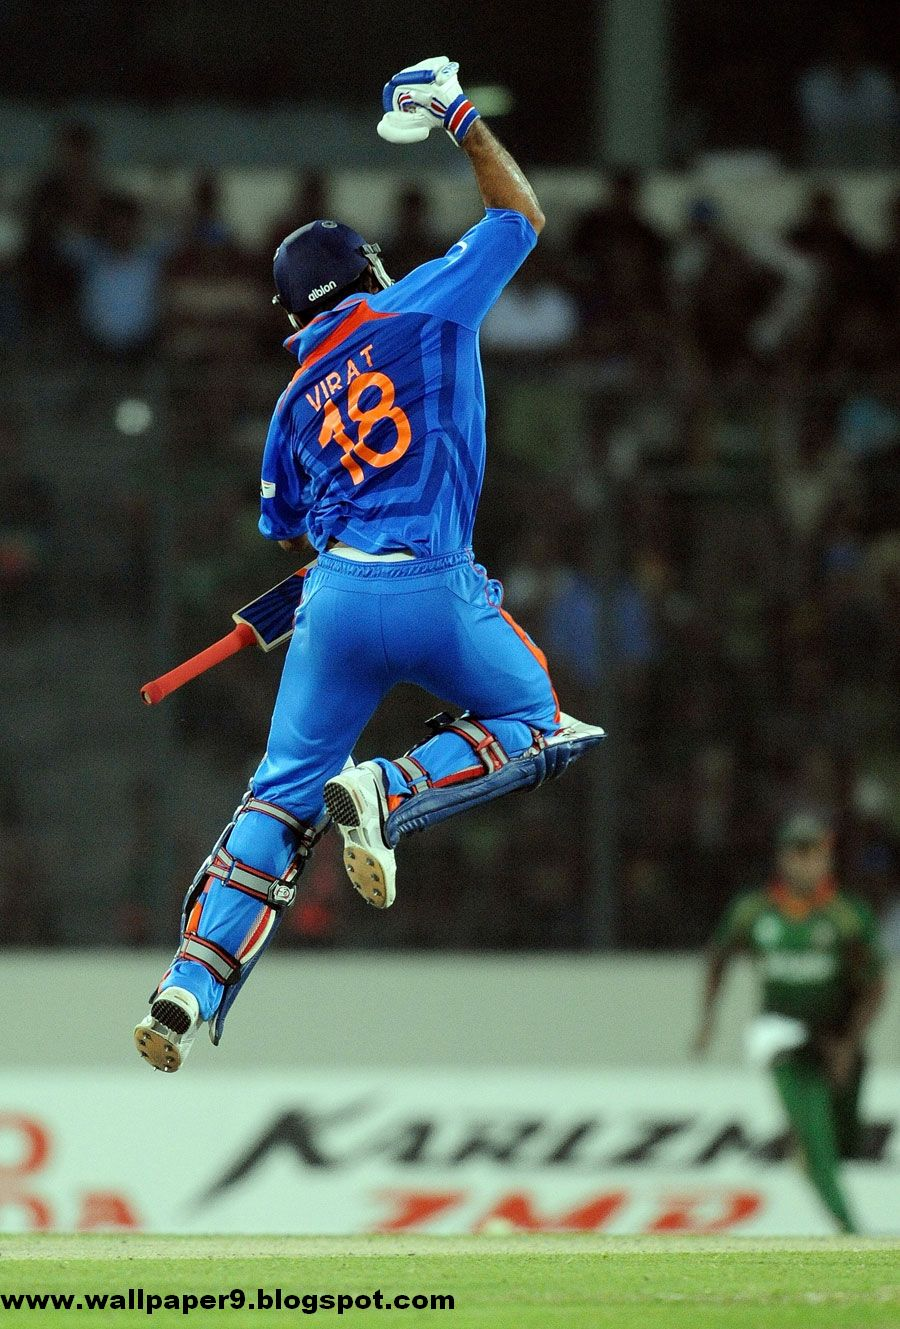 WALLPAPER WORLD: Congratulations Virat Kohli for 1st world cup Century